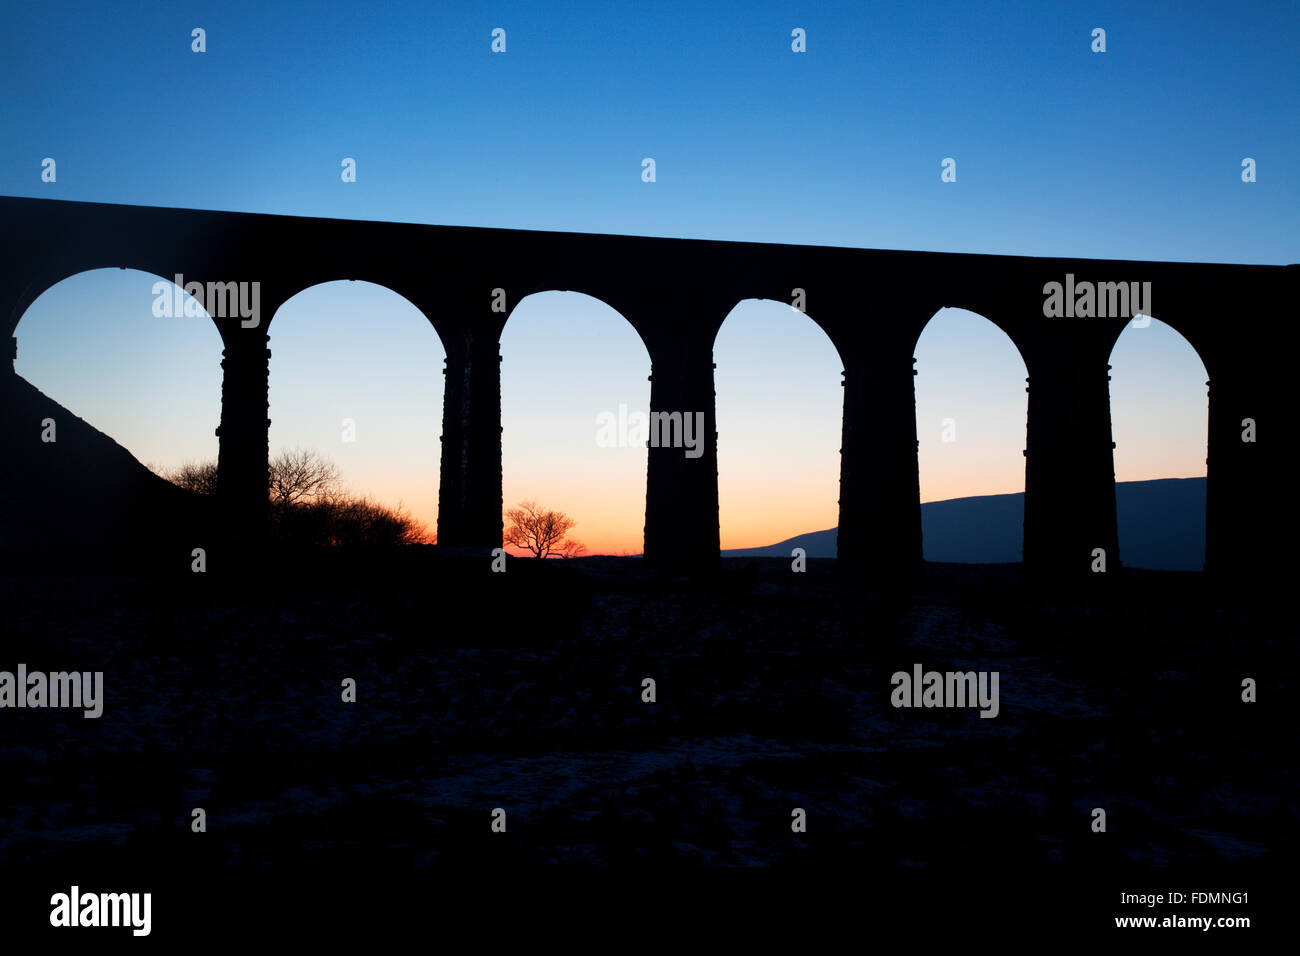 Arches of the Ribblehead Viaduct at Dusk Ribblehead Yorkshire Dales England - Stock Image